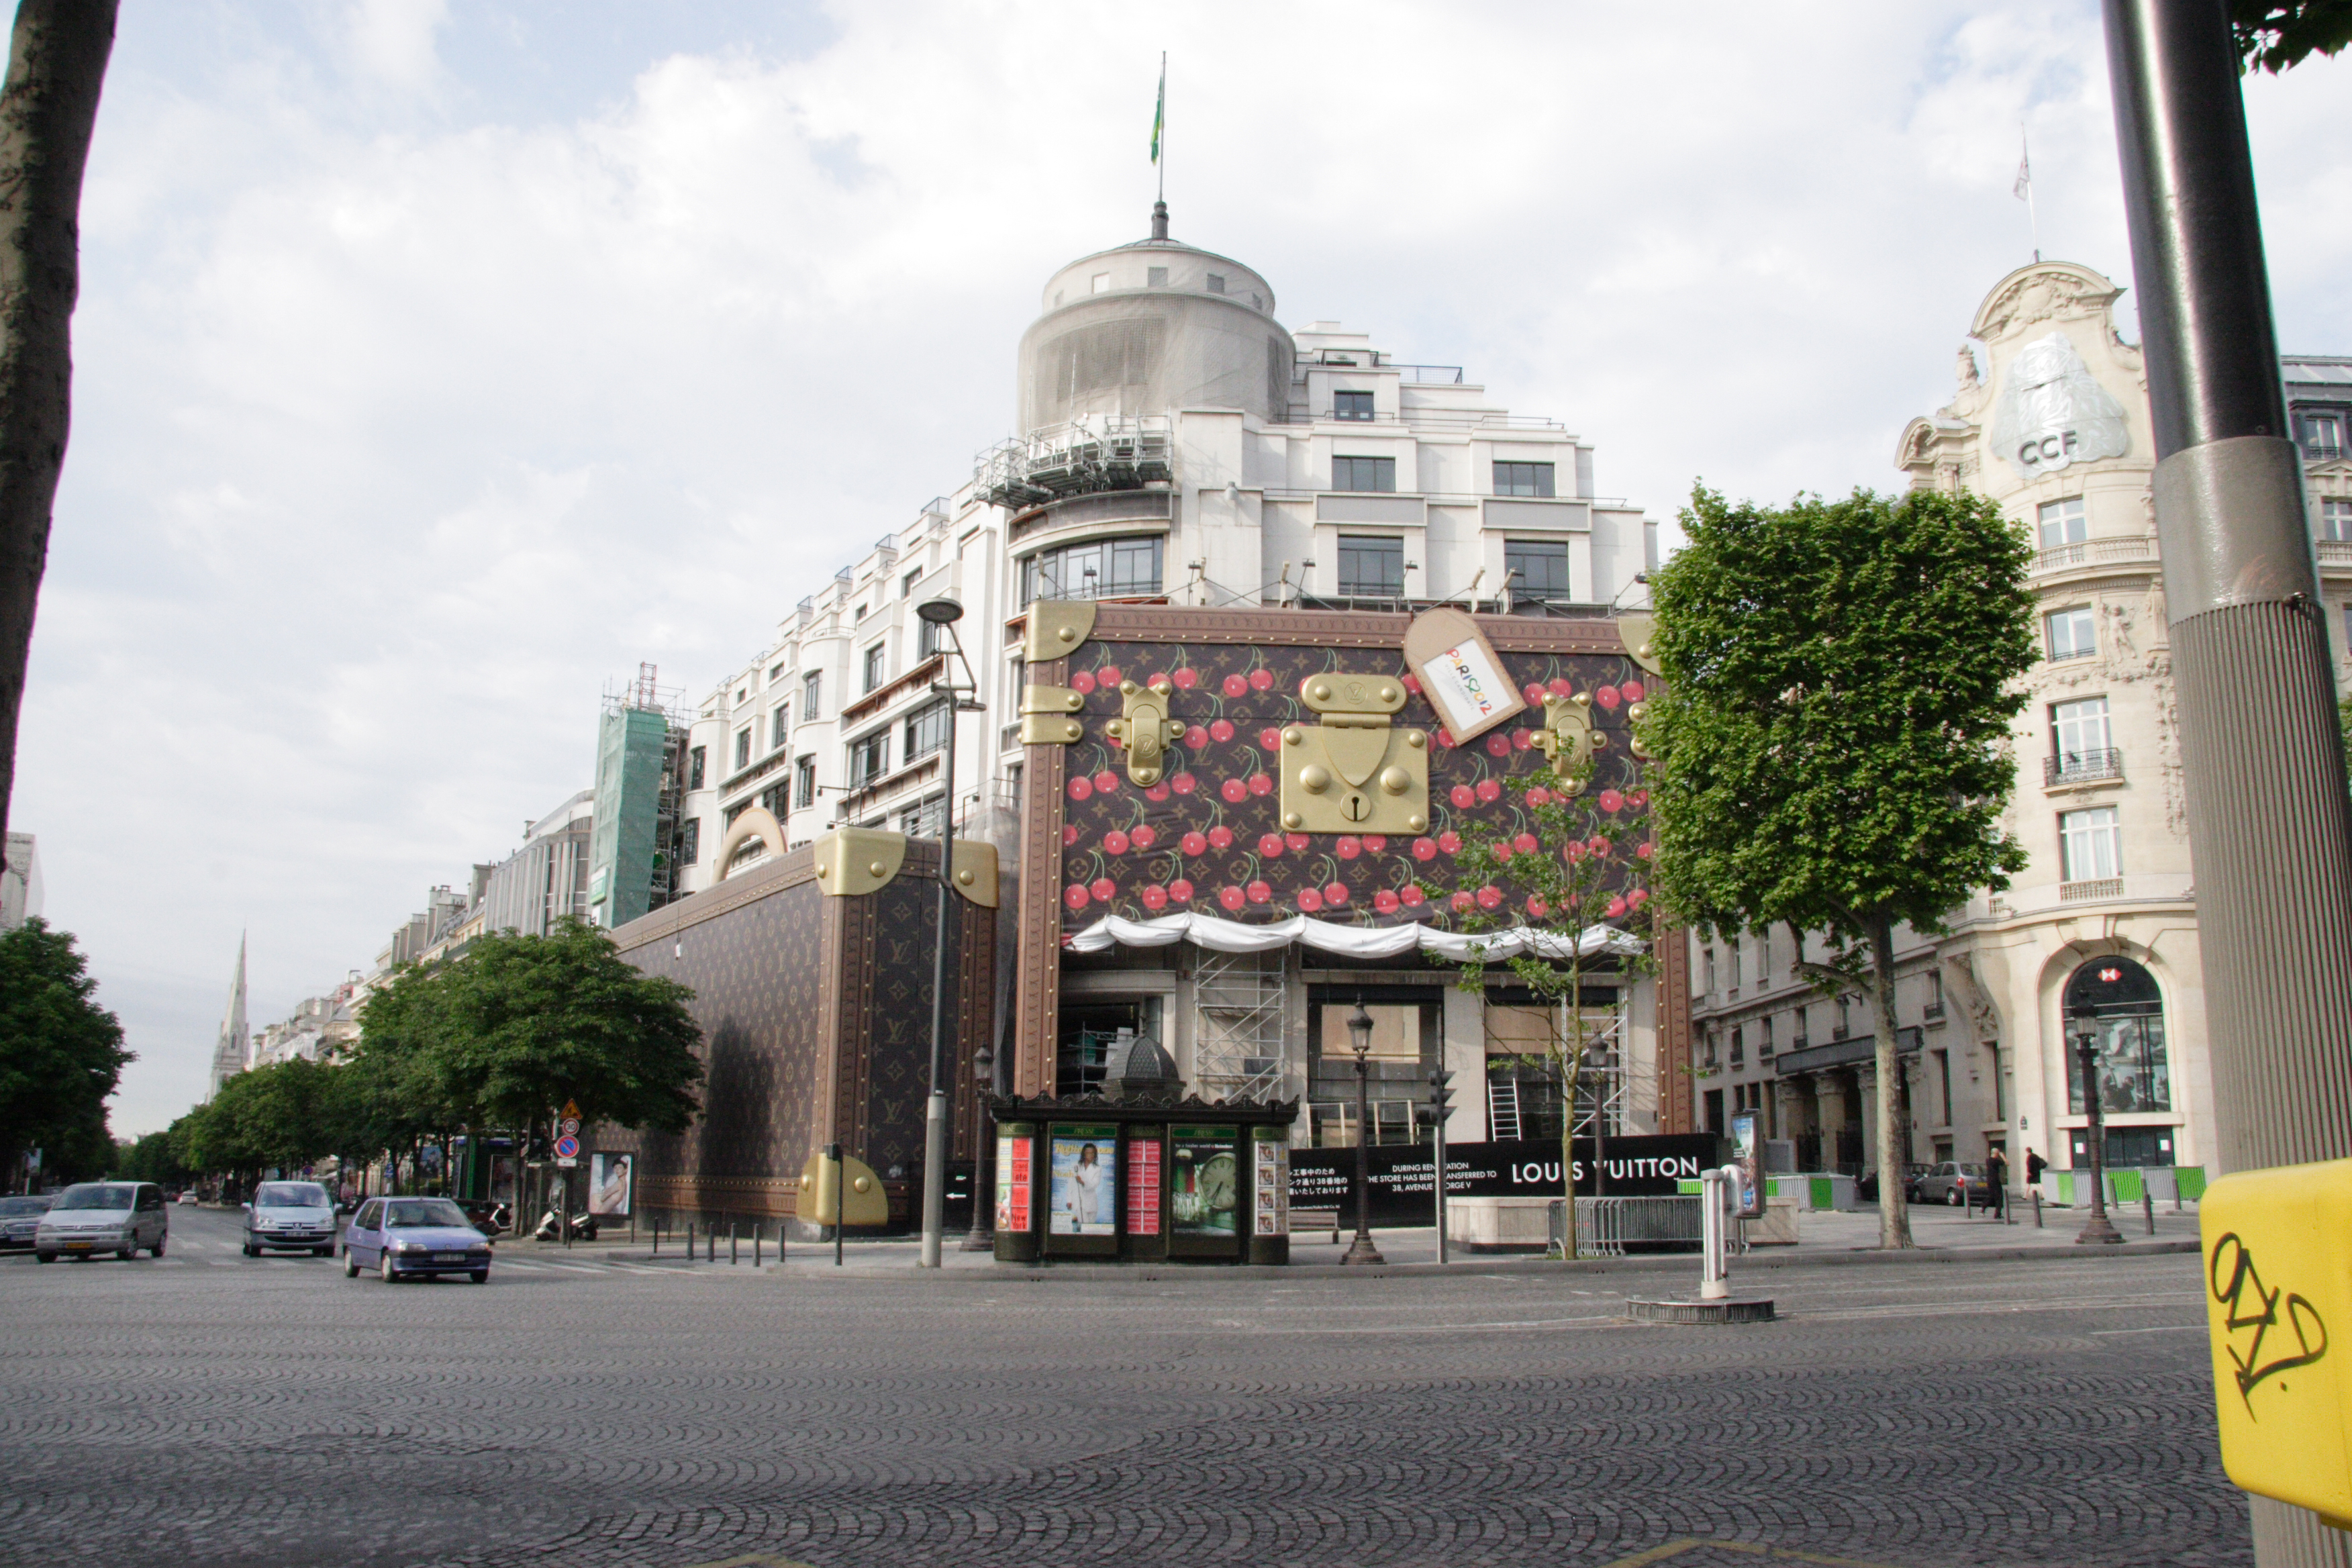 Louis Vuitton Paris